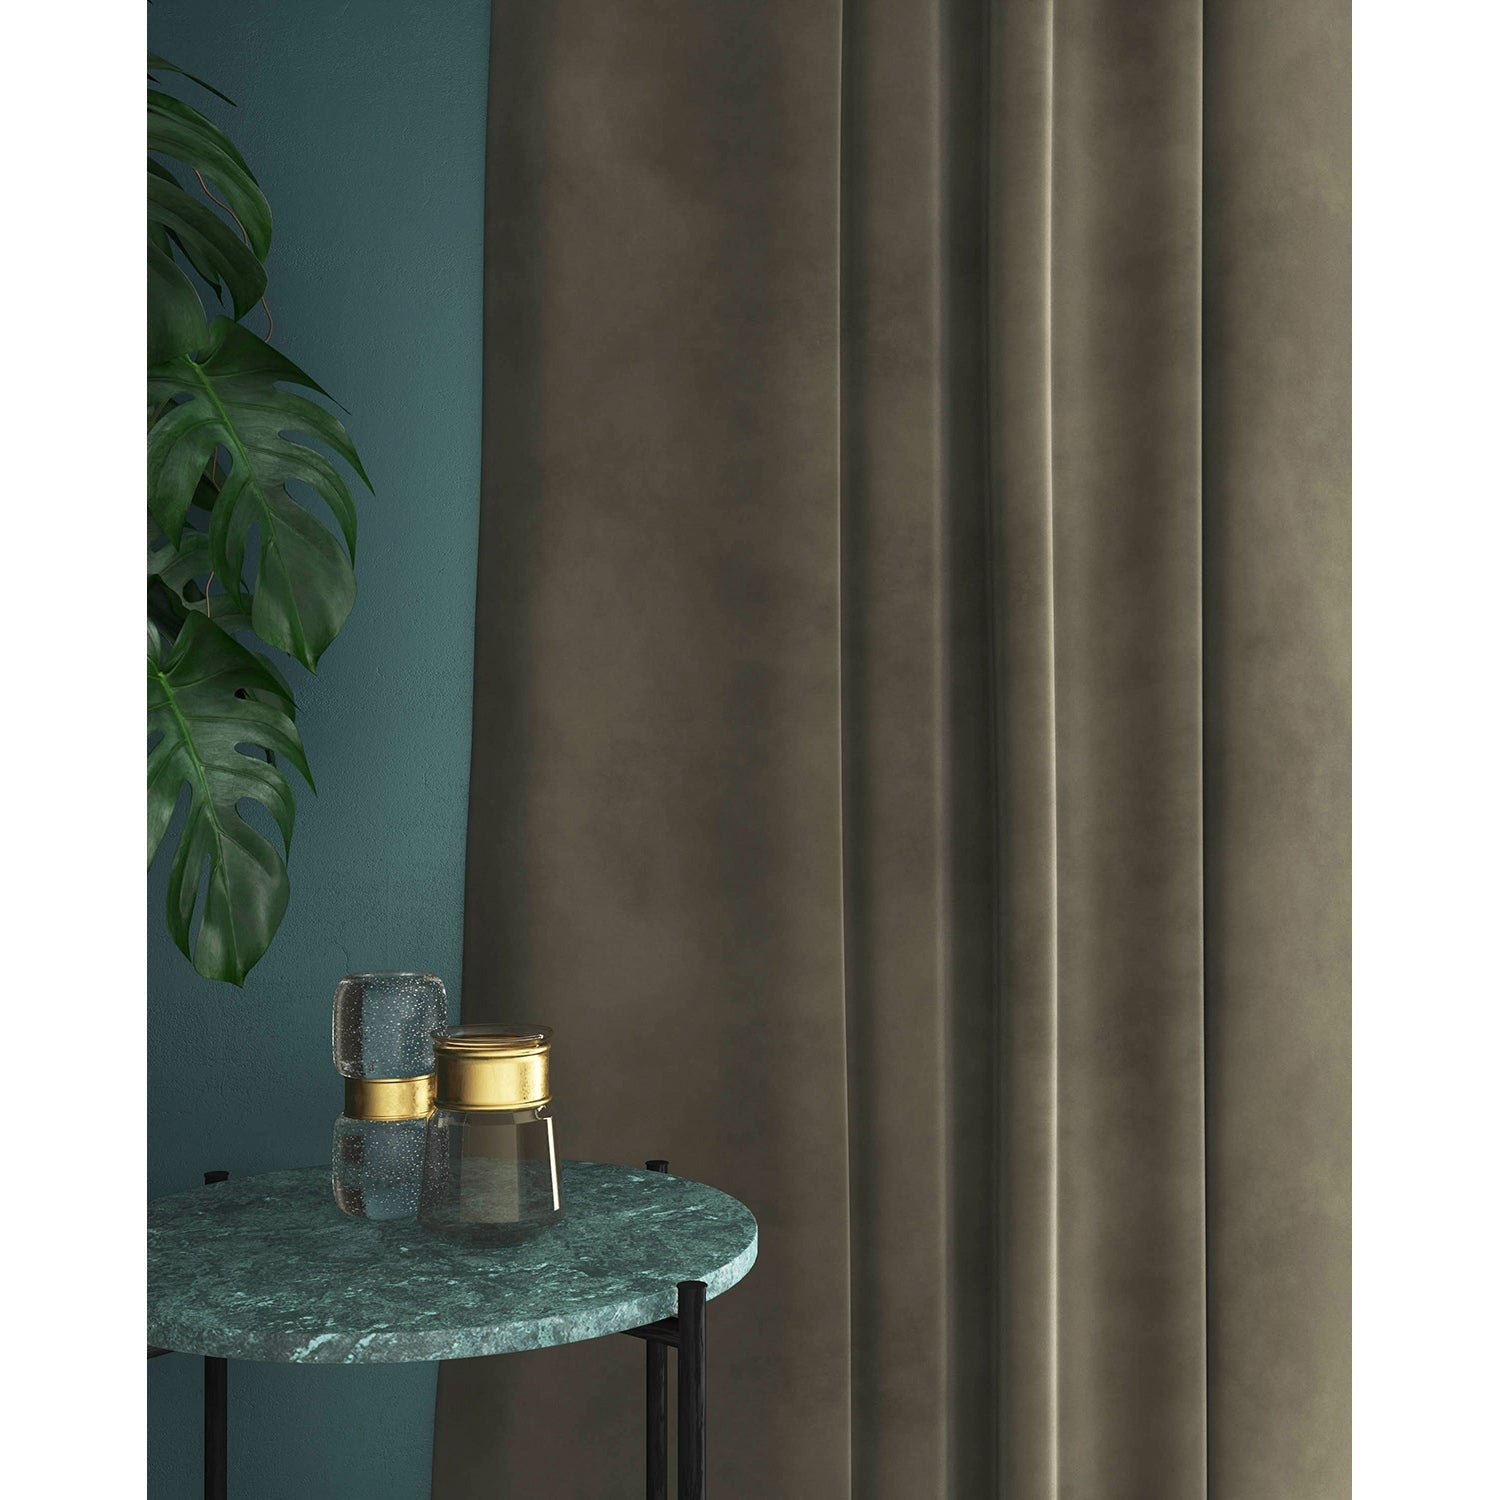 Curtains in a dark neutral plain velvet fabric with a stain resist finish